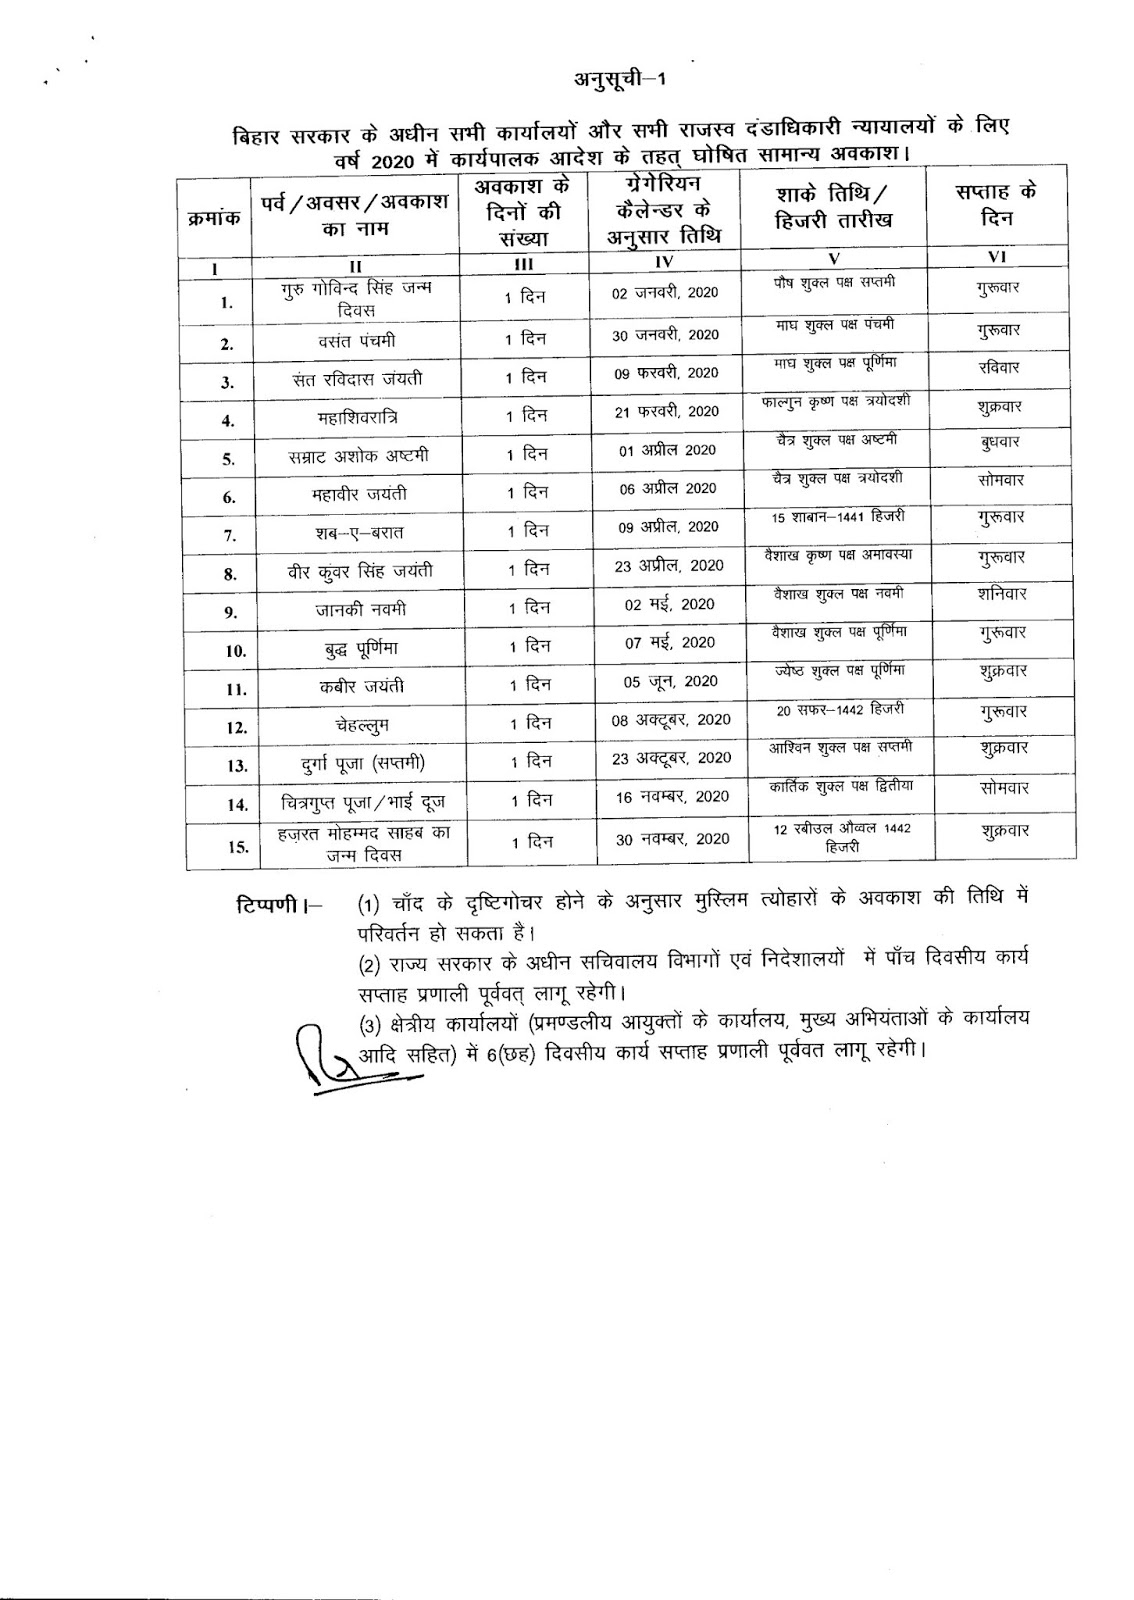 Calender Bihar Sarkar Calendar 2020 within Bihar Government Holiday Calendar